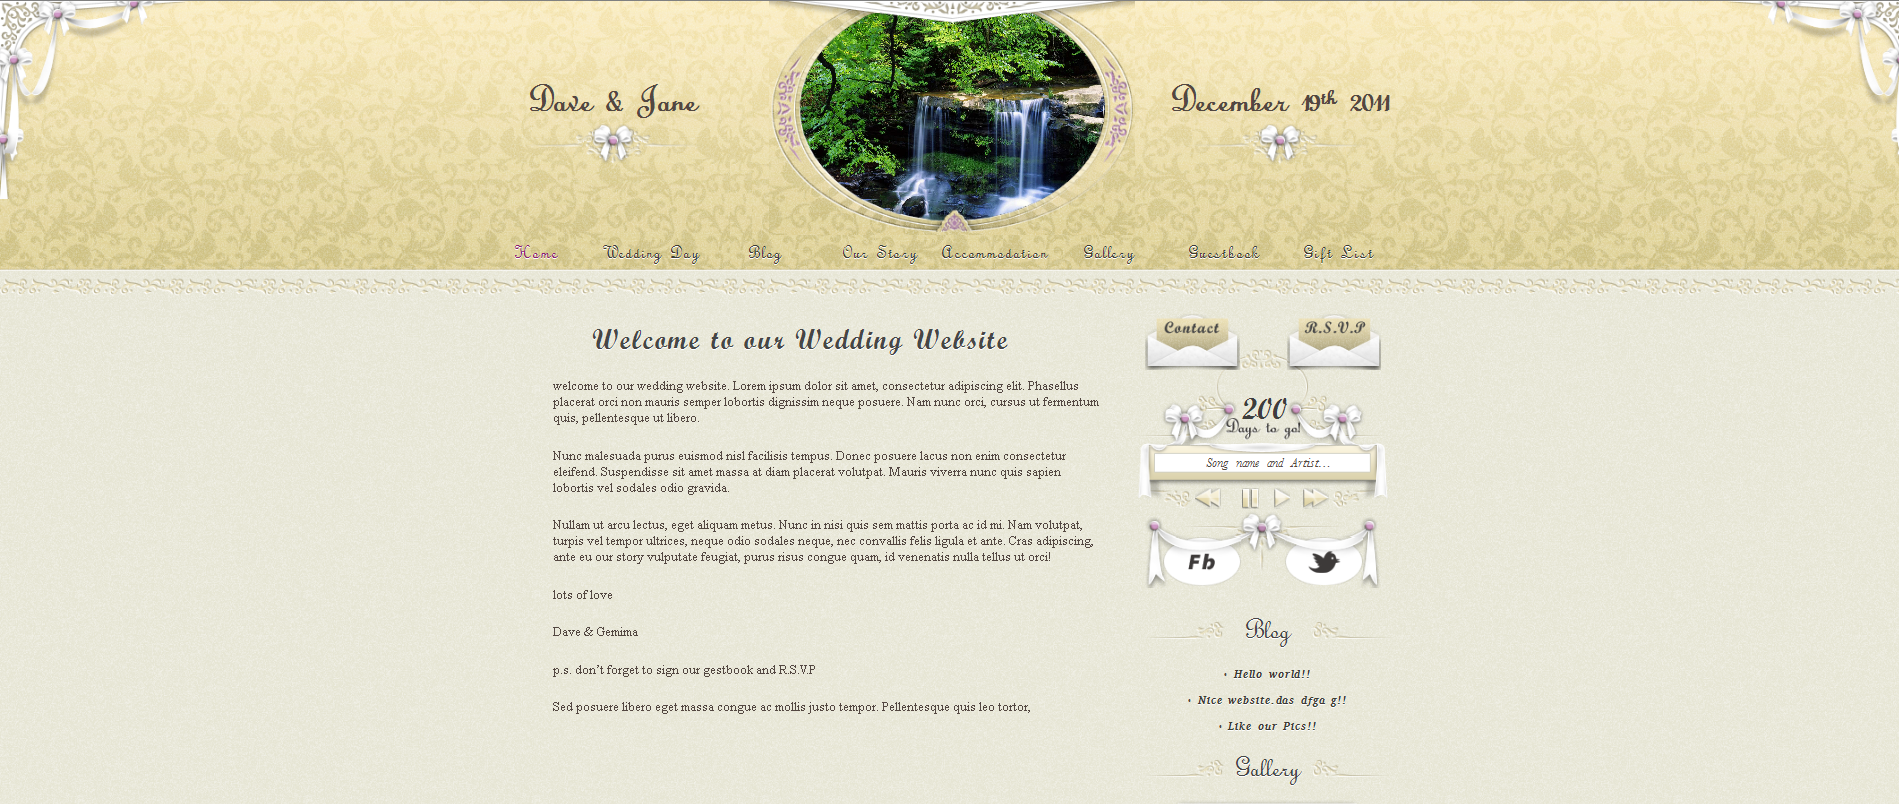 personal wedding website screenshot 12